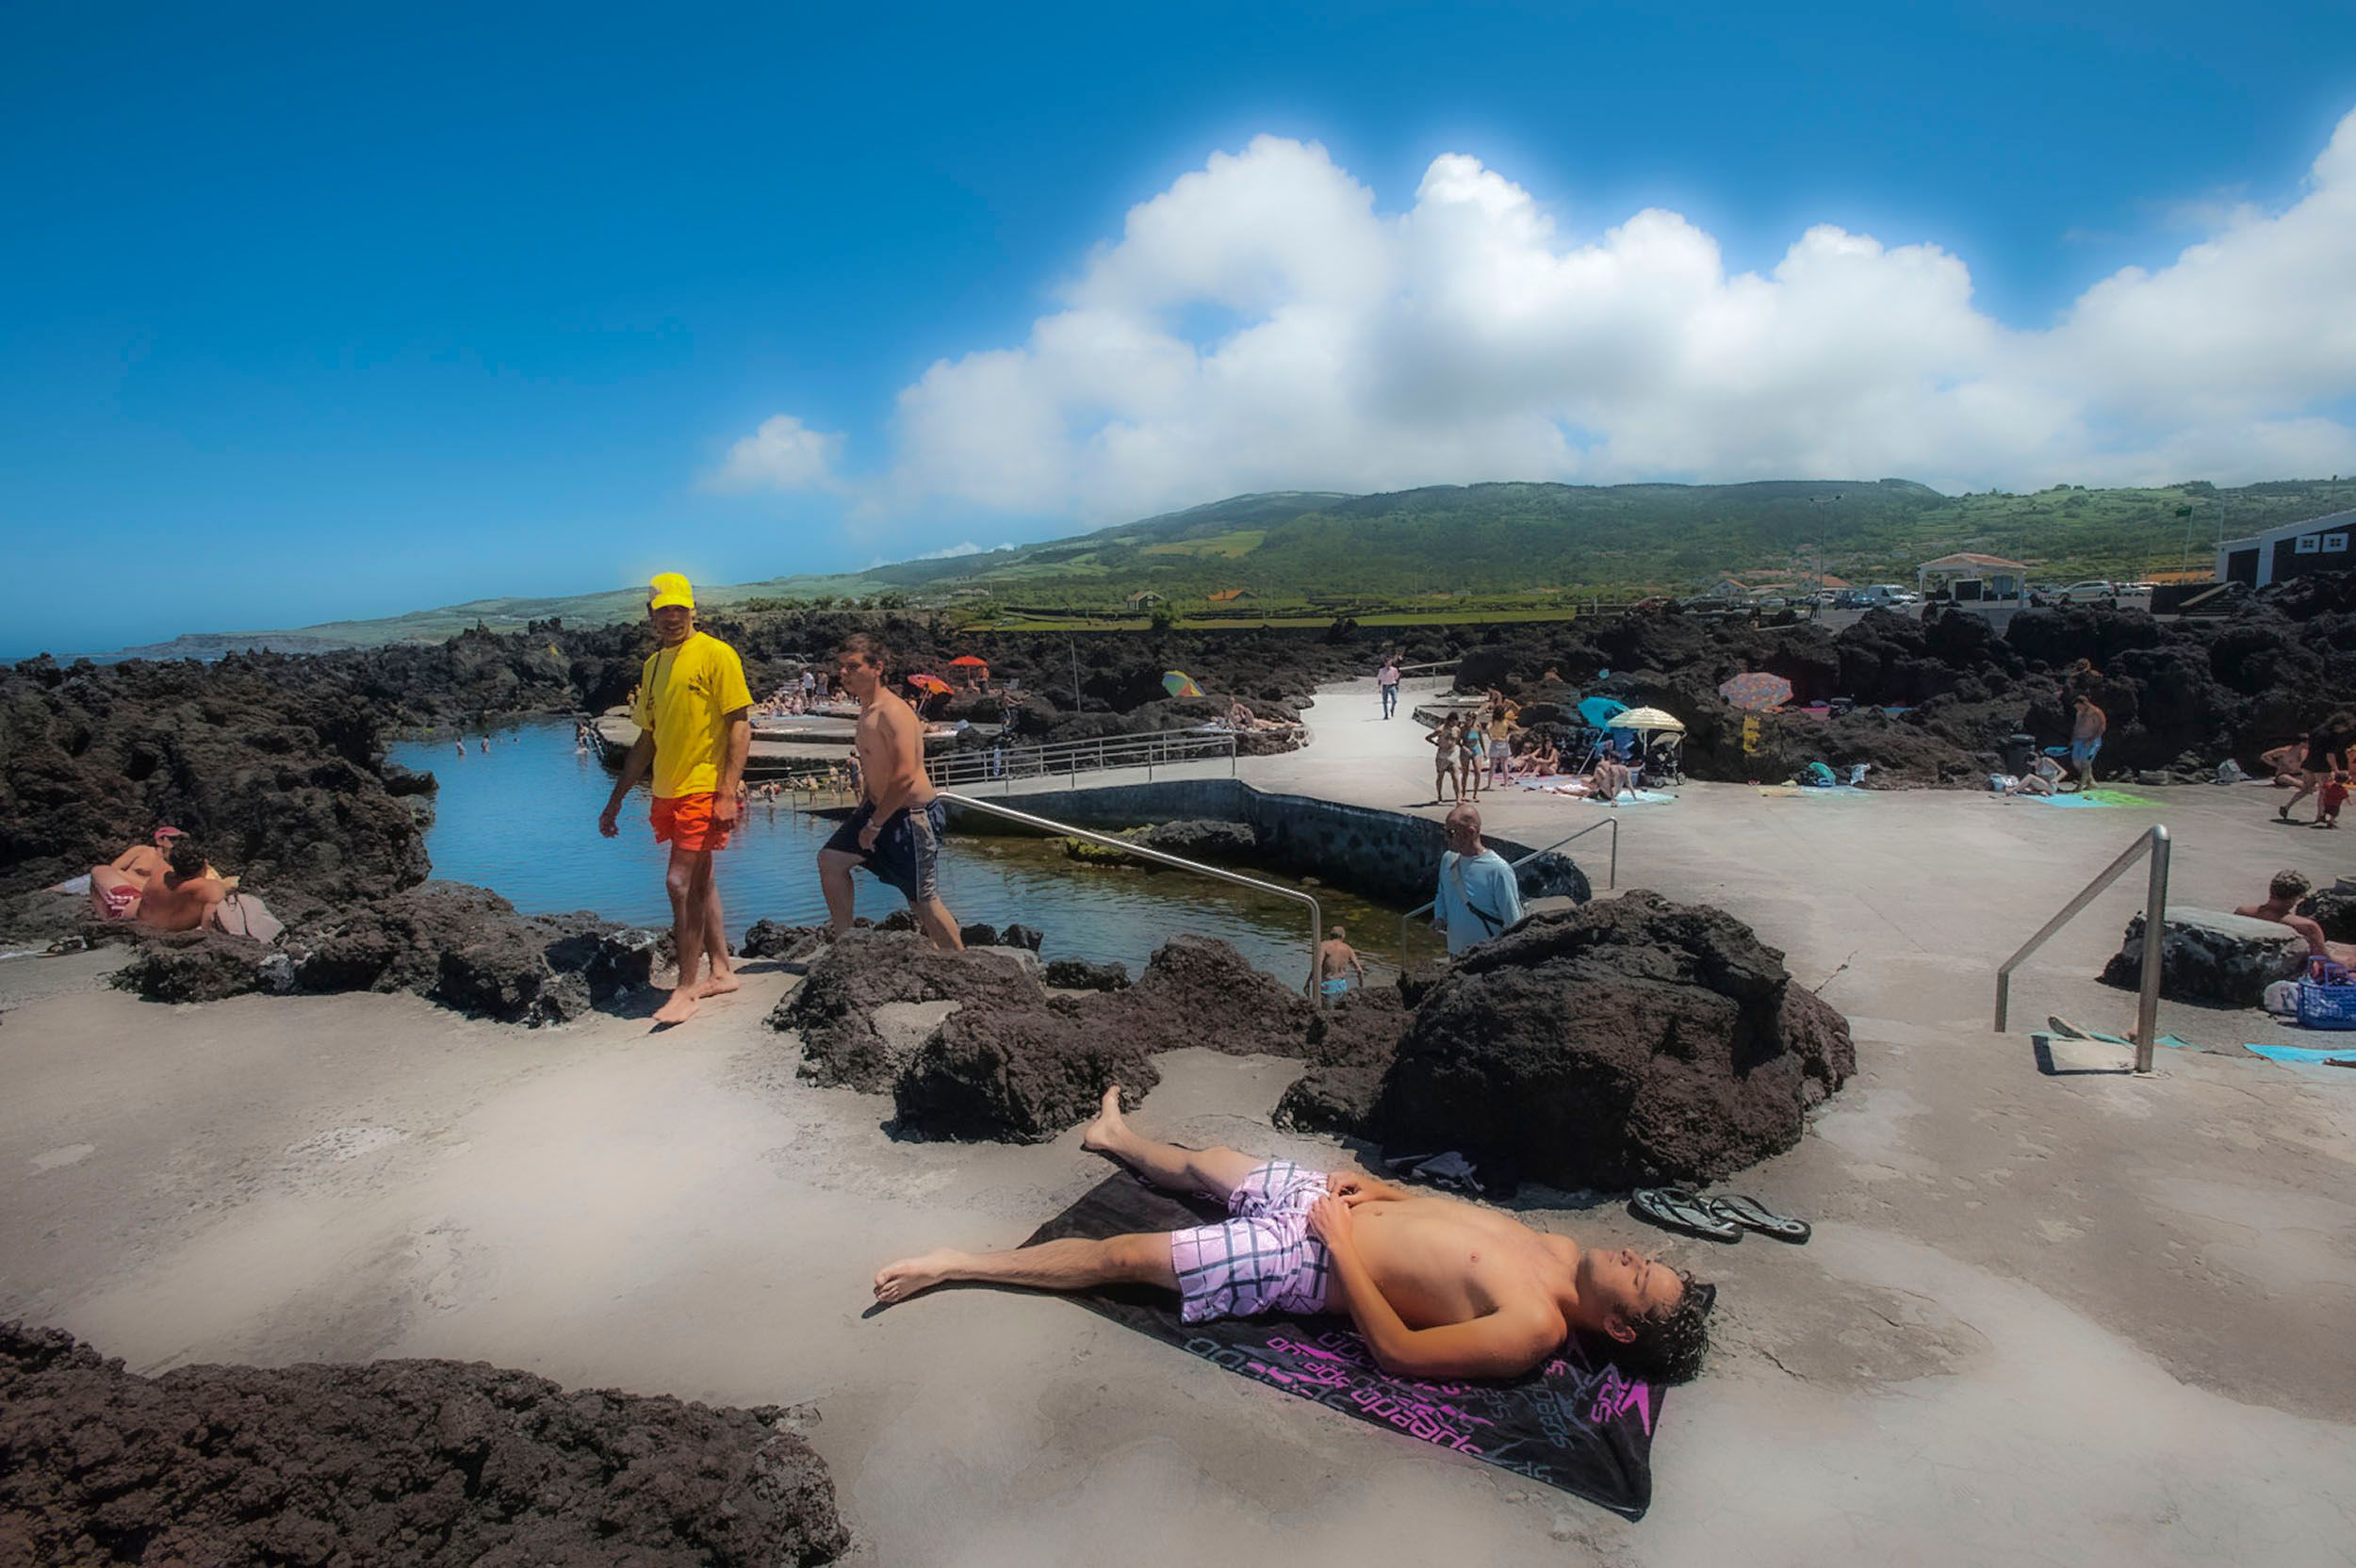 Sunbathing in the Azores